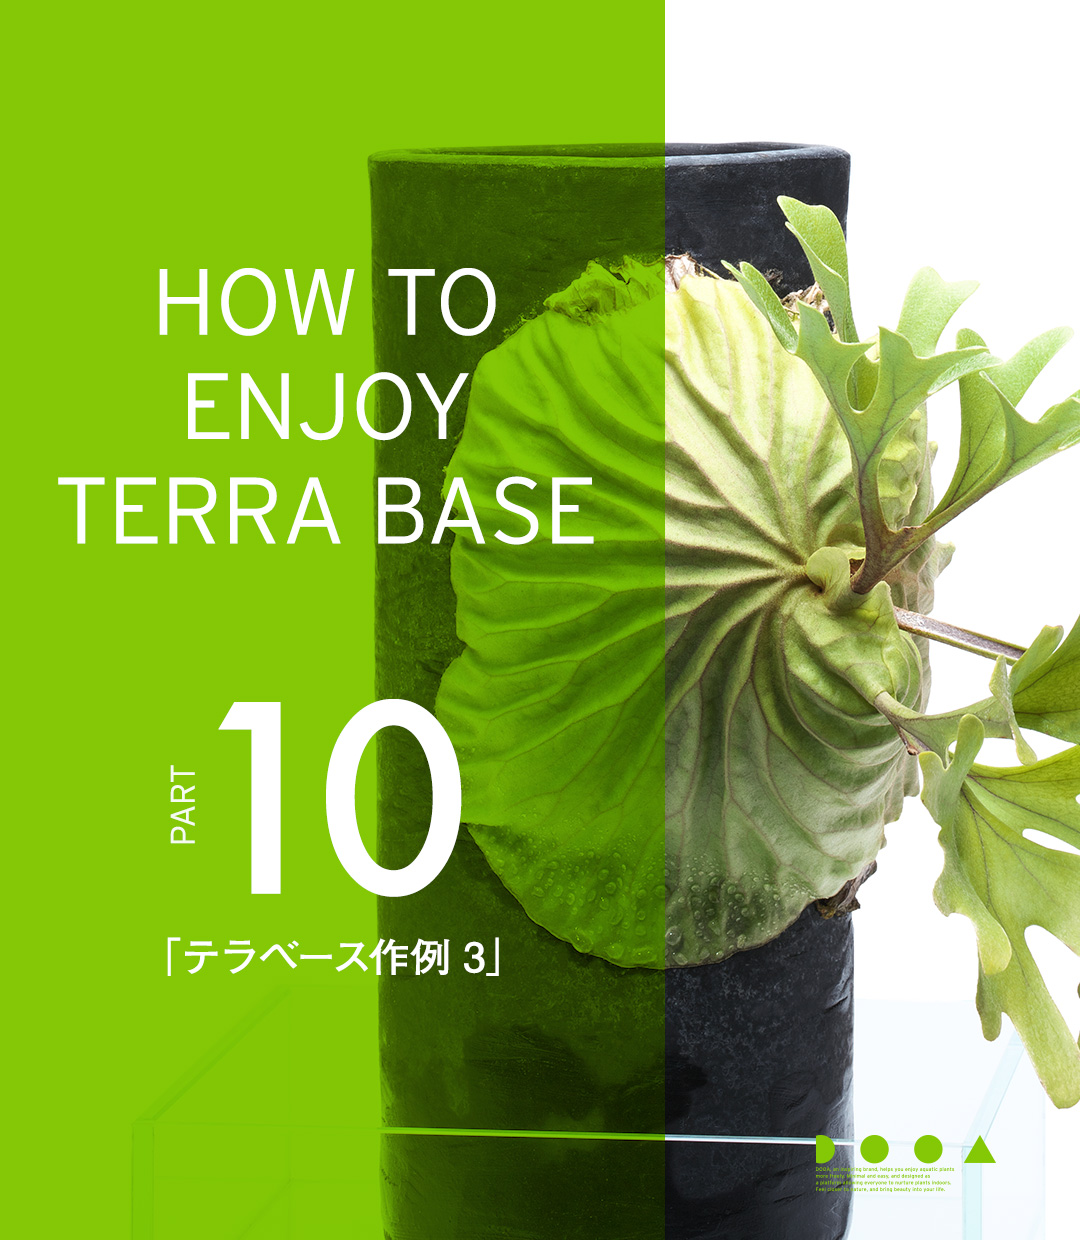 HOW TO ENJOY TERRA BASE PART10 「テラベース作例 3」